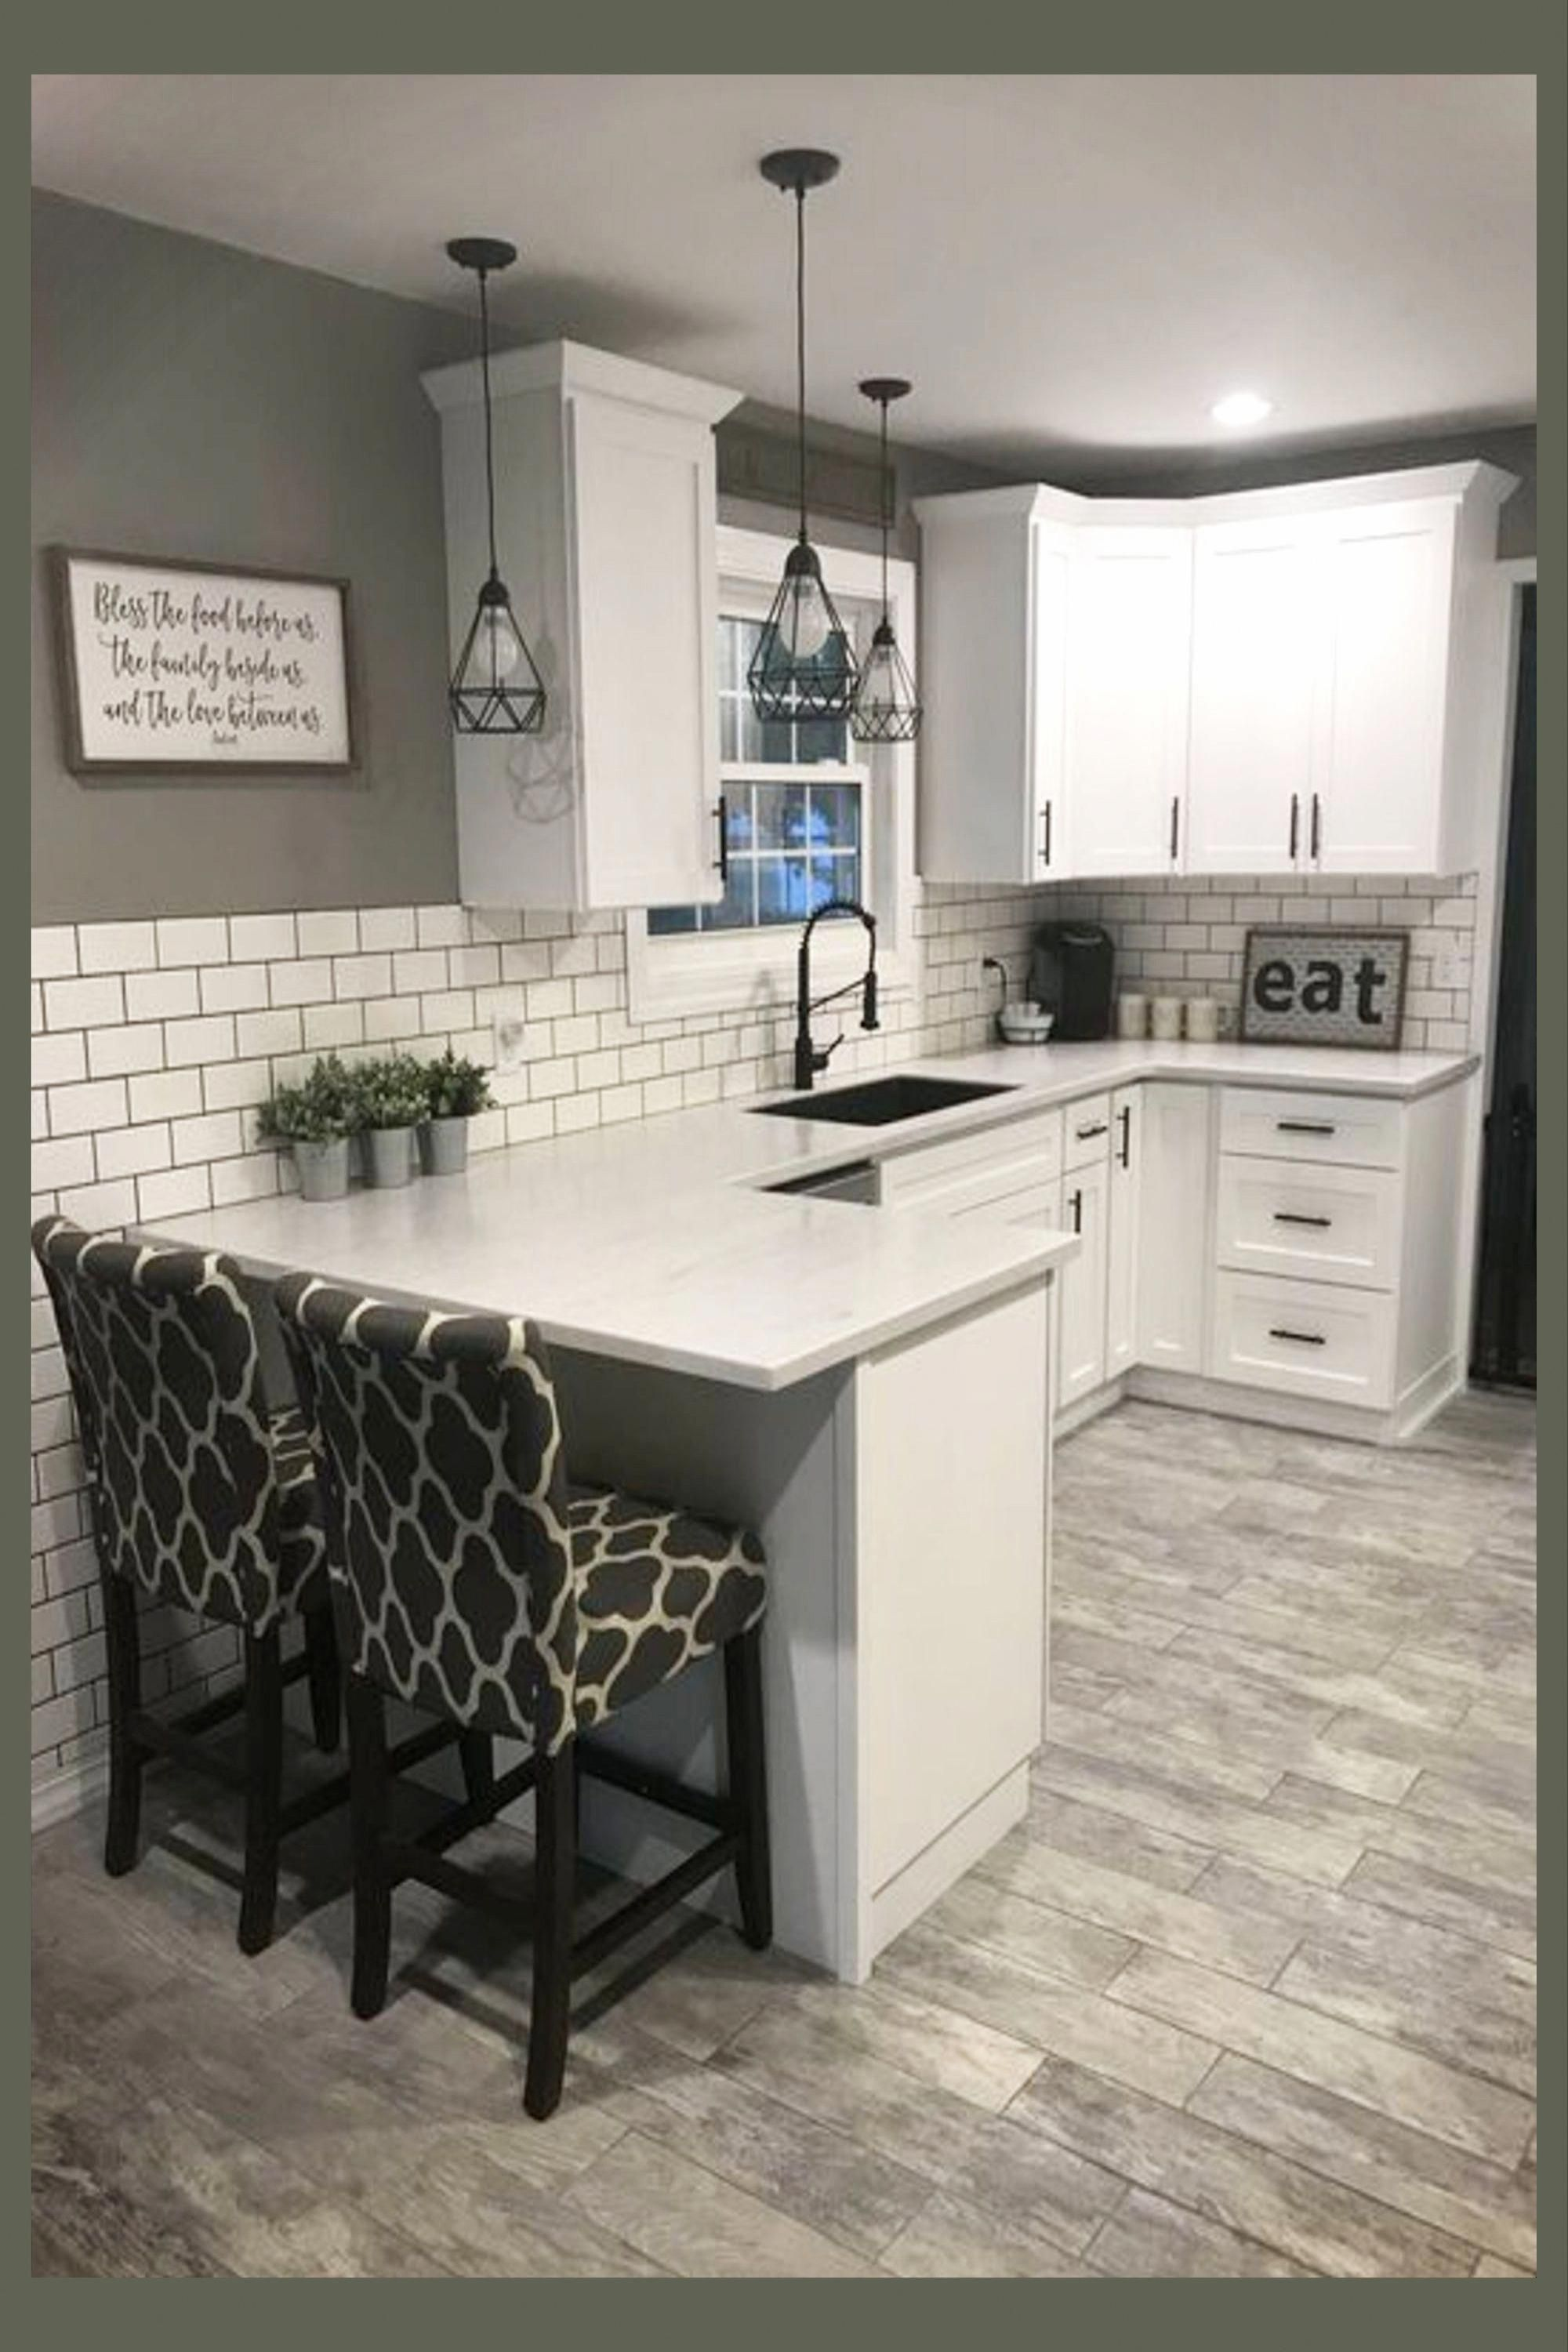 Farmhouse Kitchen Ideas Pictures Of Country Farmhouse Kitchens On A Budget New For 2021 Kitchen Remodel Small Small Kitchen Decor Farmhouse Kitchen On A Budget